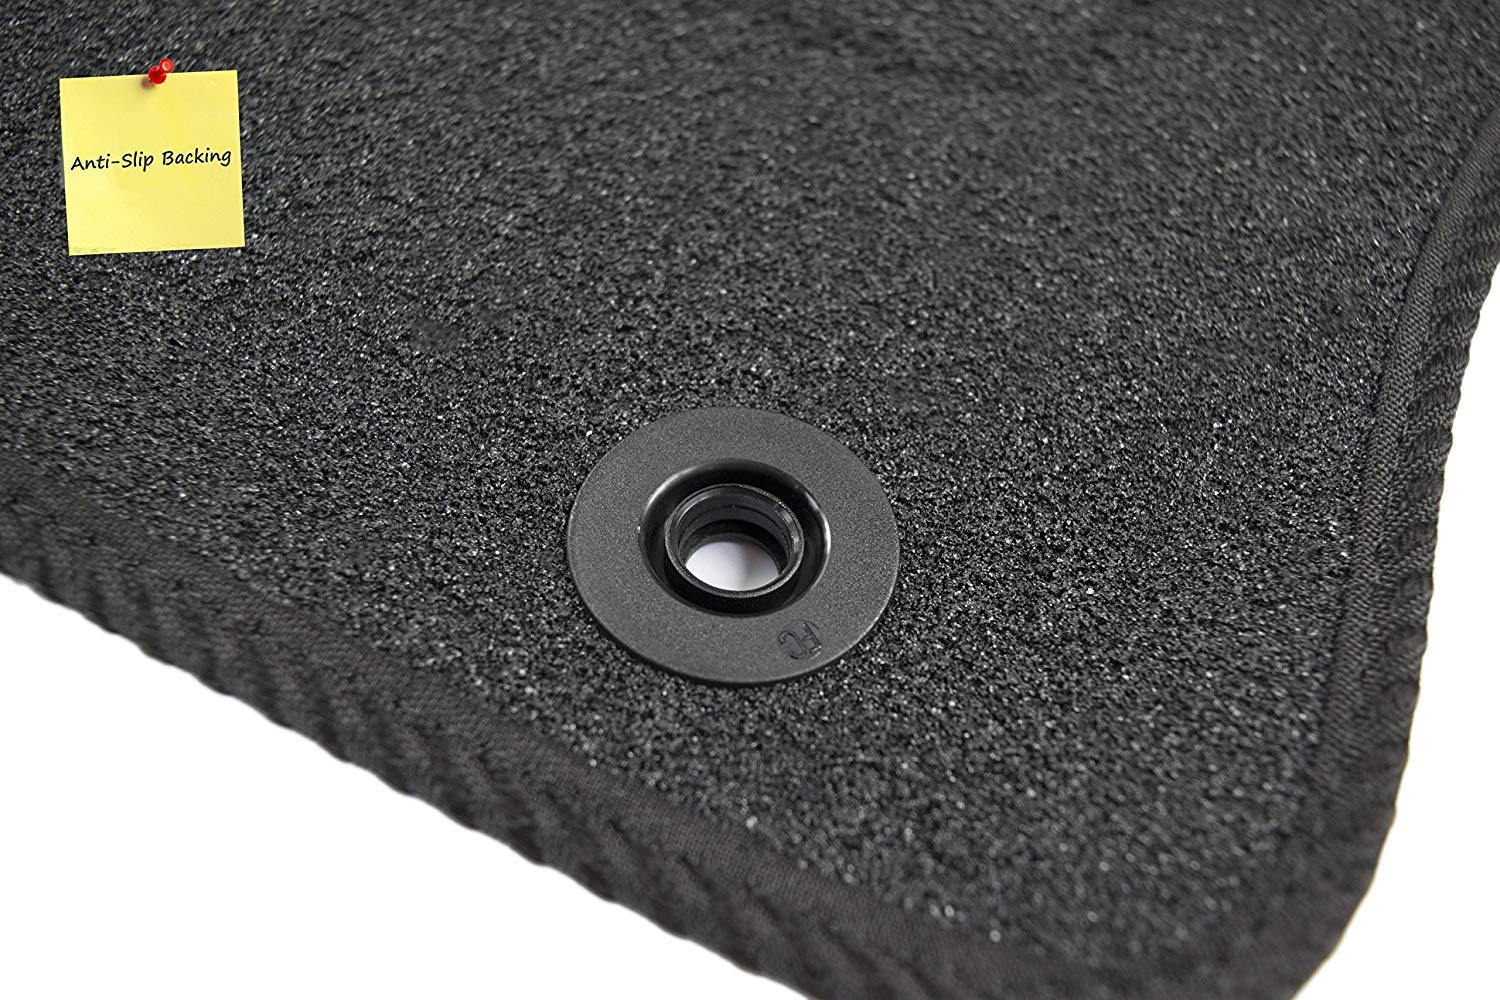 Fully Custom Tailored Vehicle-Specific Deluxe Car Mats for Kodiaq 2017 Onwards Black w// Black Trim 5118560 by Connected Essentials Set of 4 Pieces with Security Clips